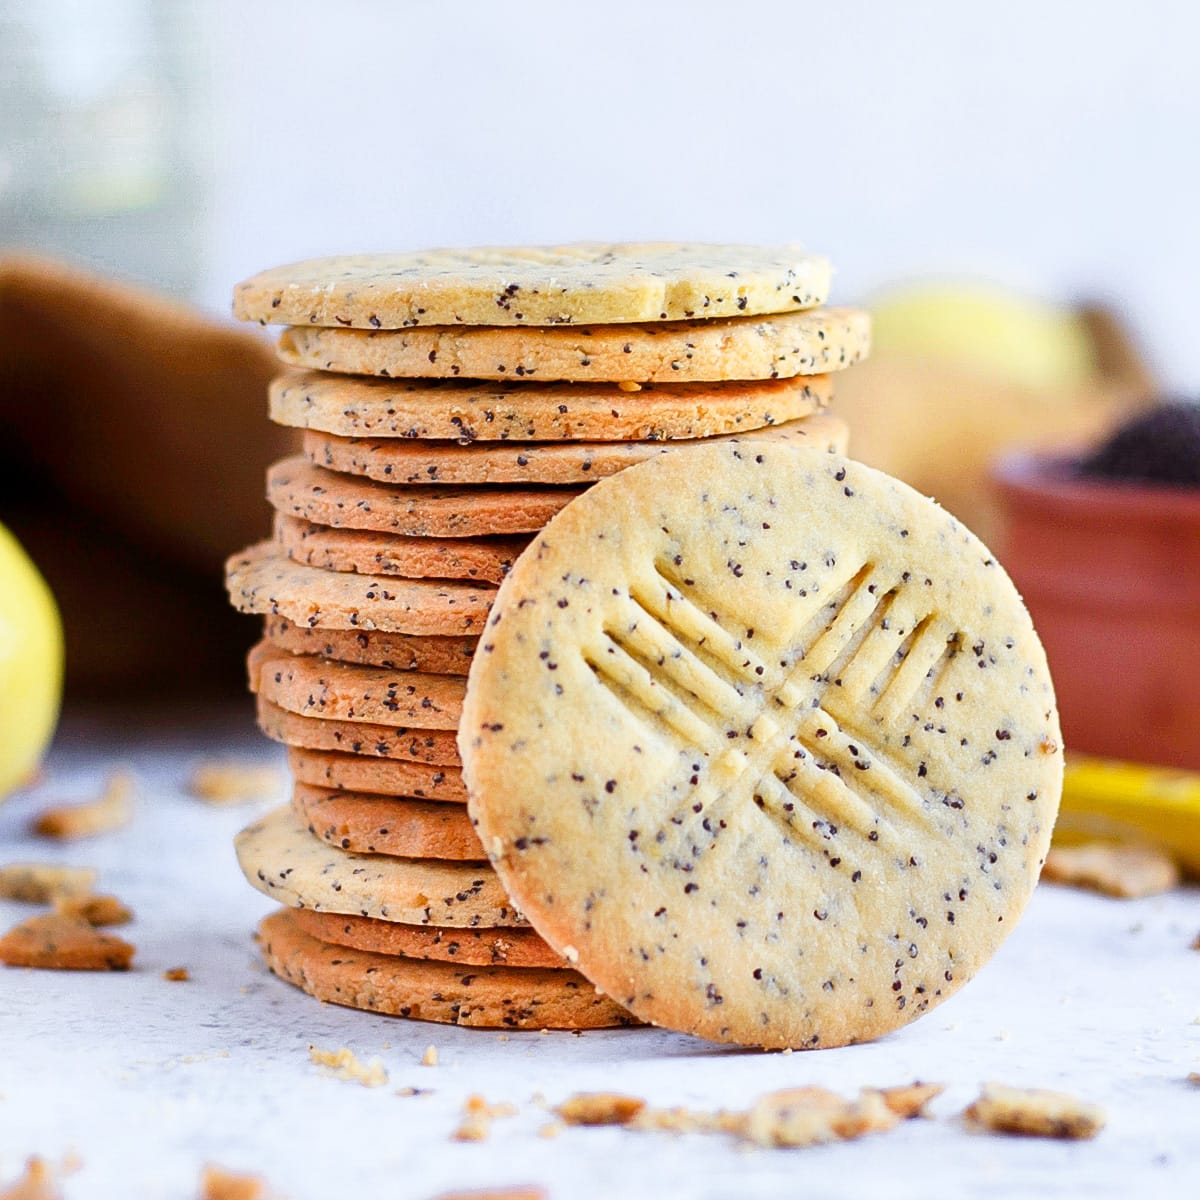 One cookie leaning on a stack of shortbread